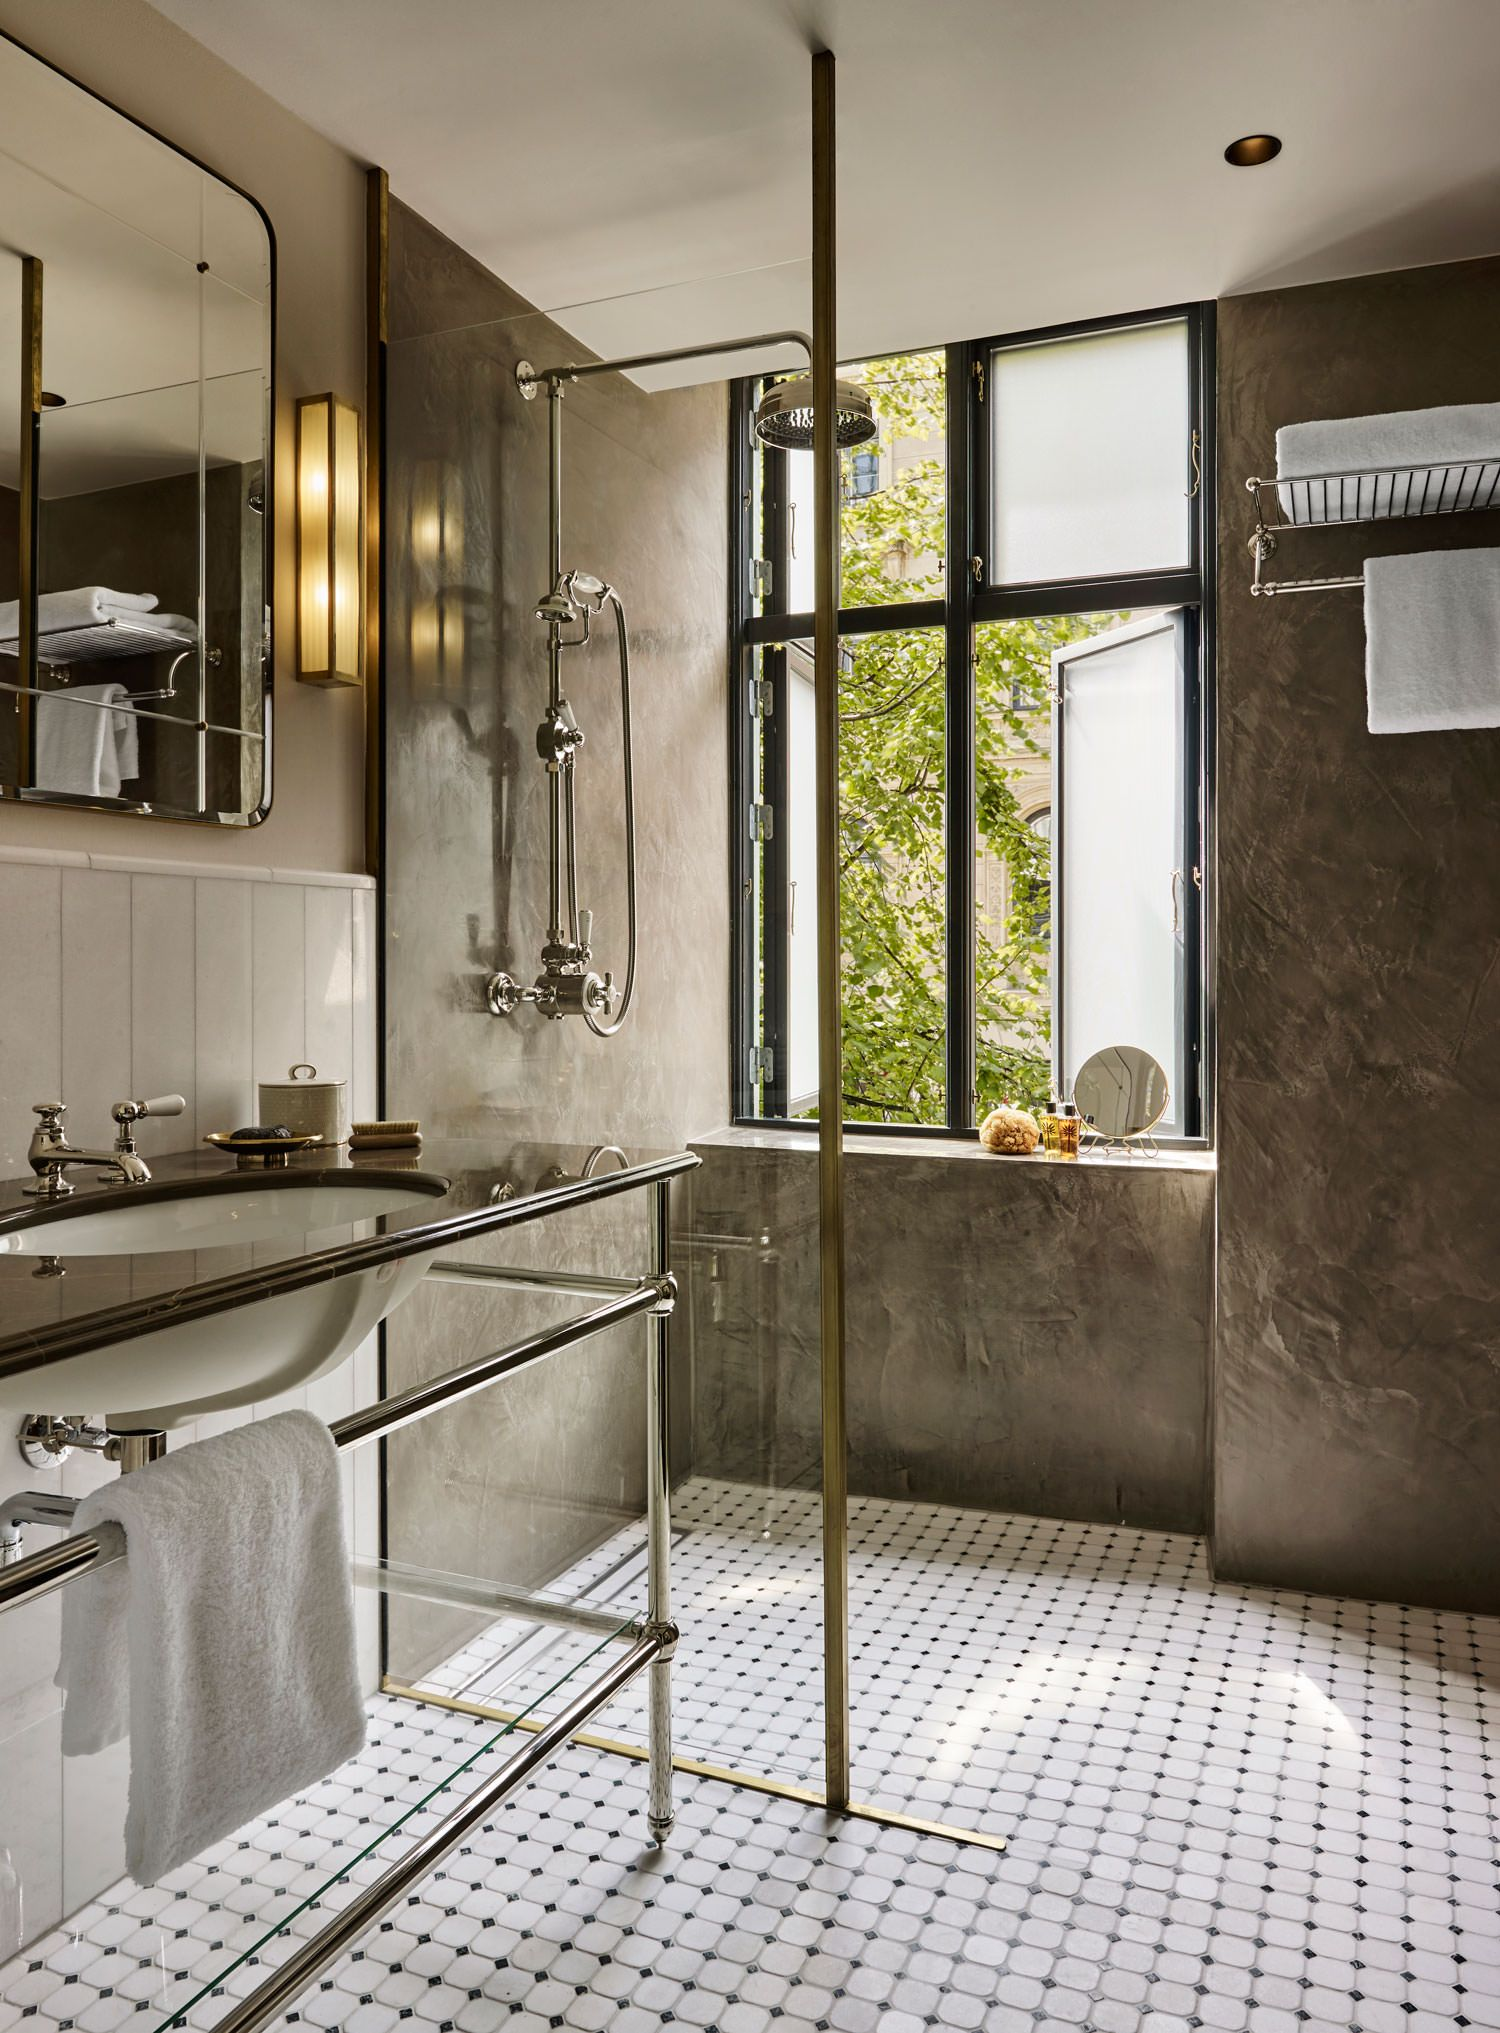 Stylish Bathroom Features A Large Walk In Shower And Metallic